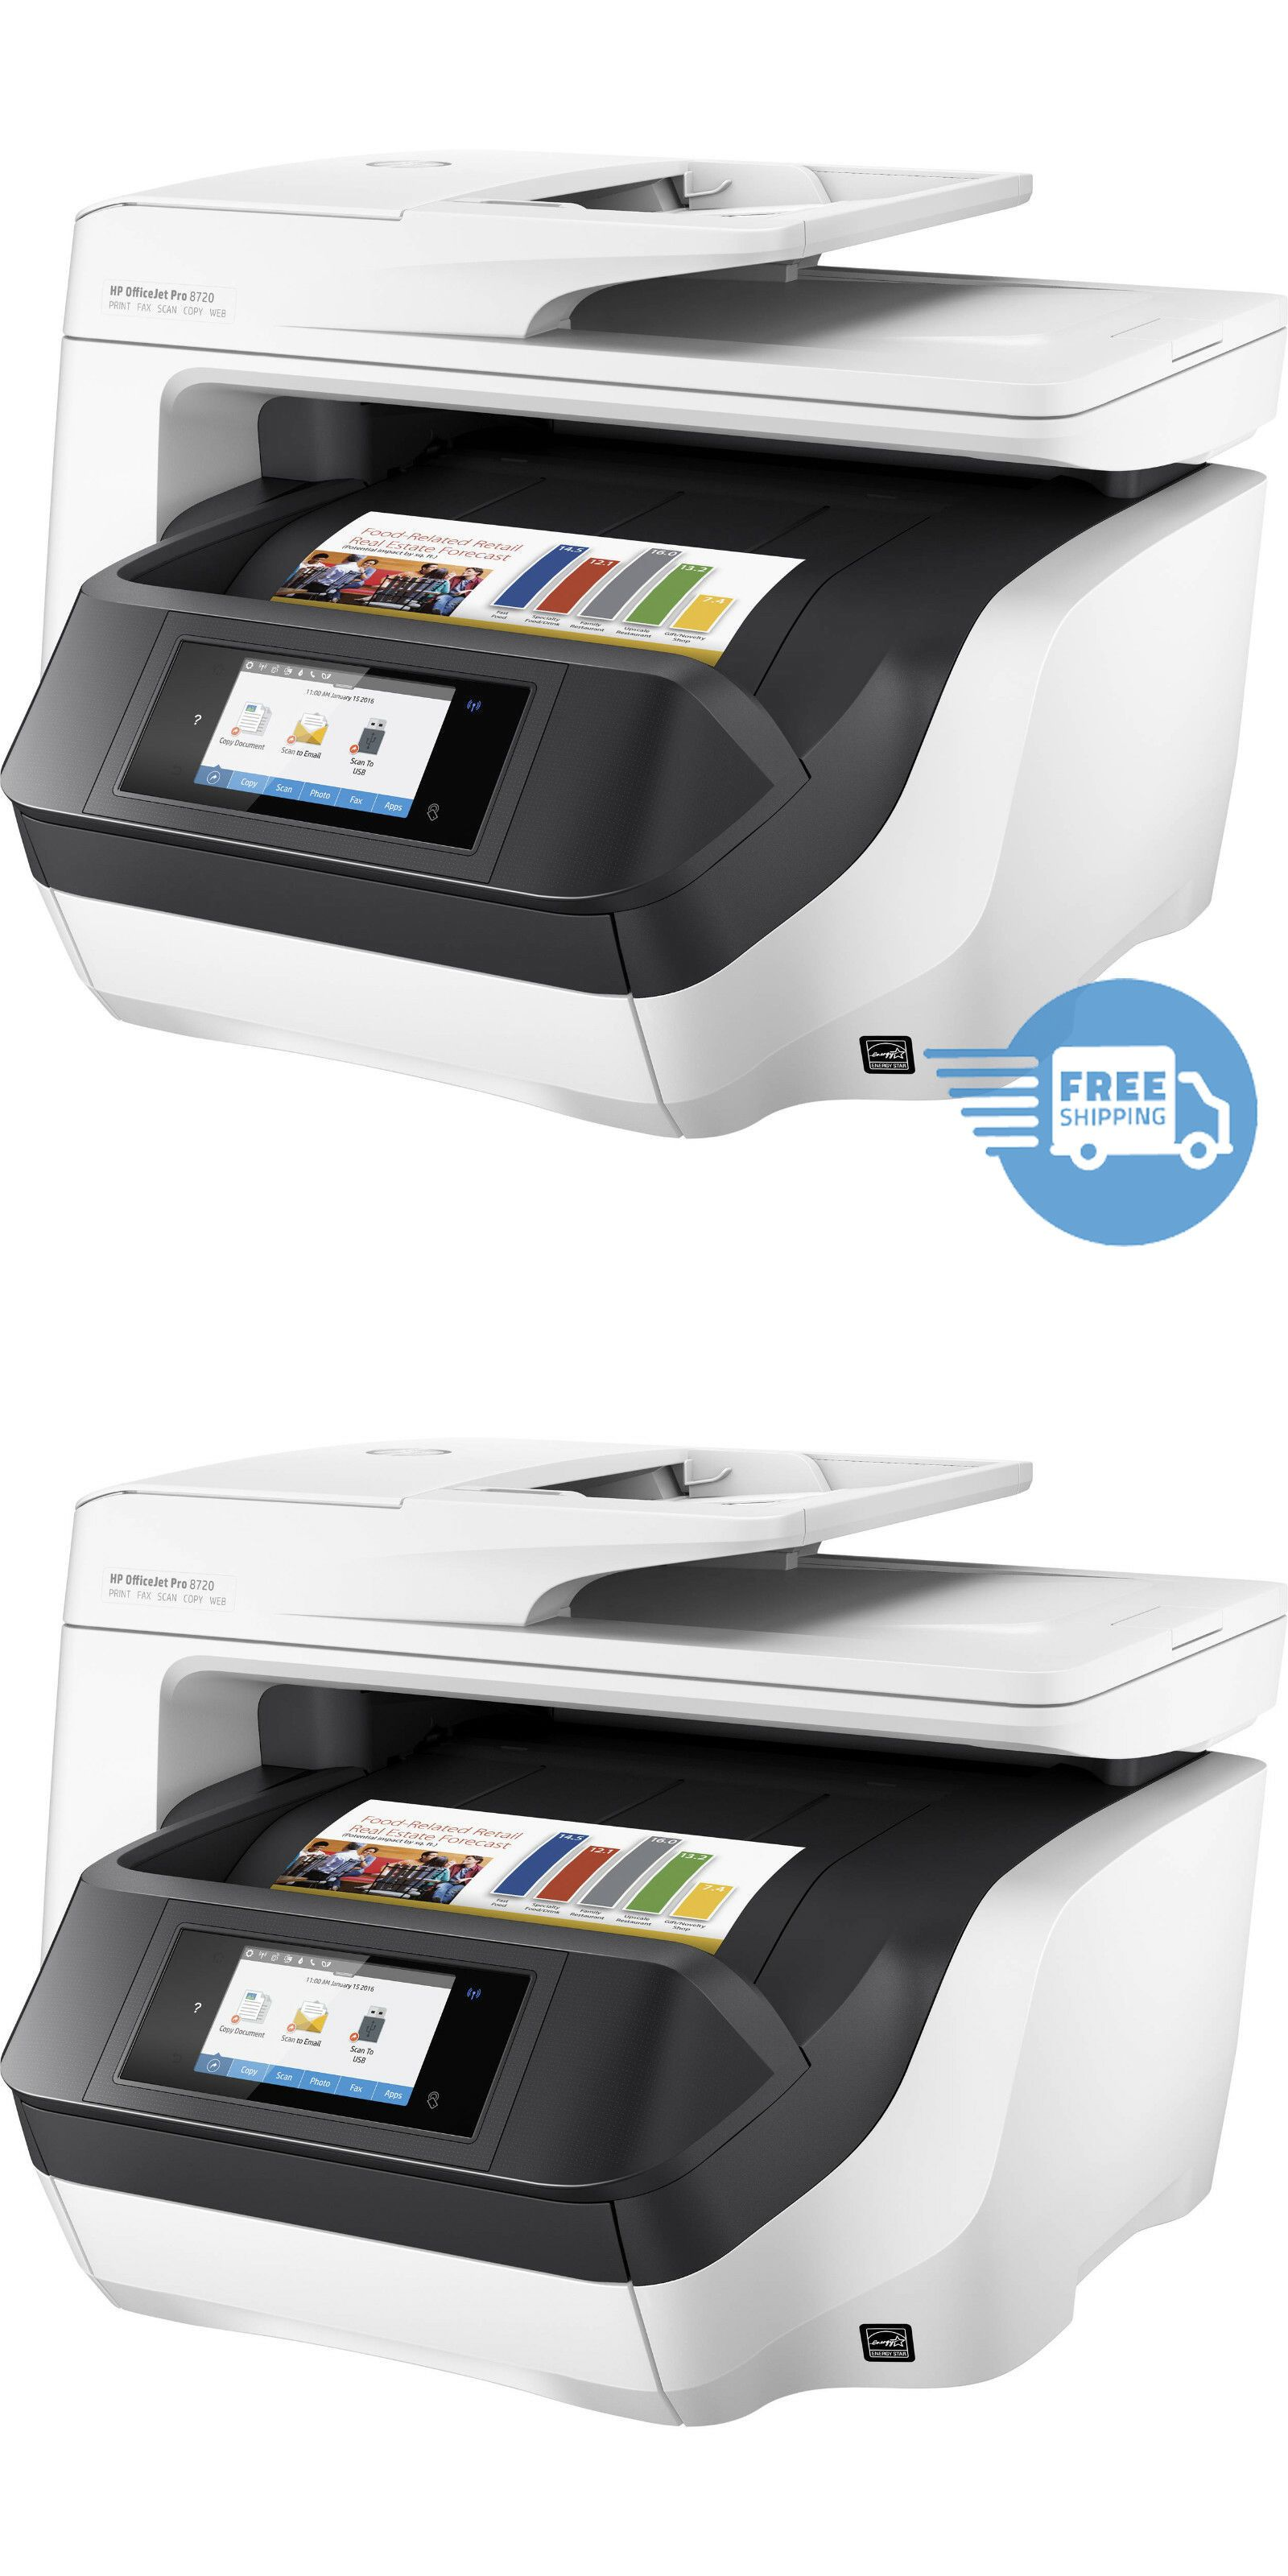 Printers 1245: Hp Officejet Pro 8720 White All-In-One Printer